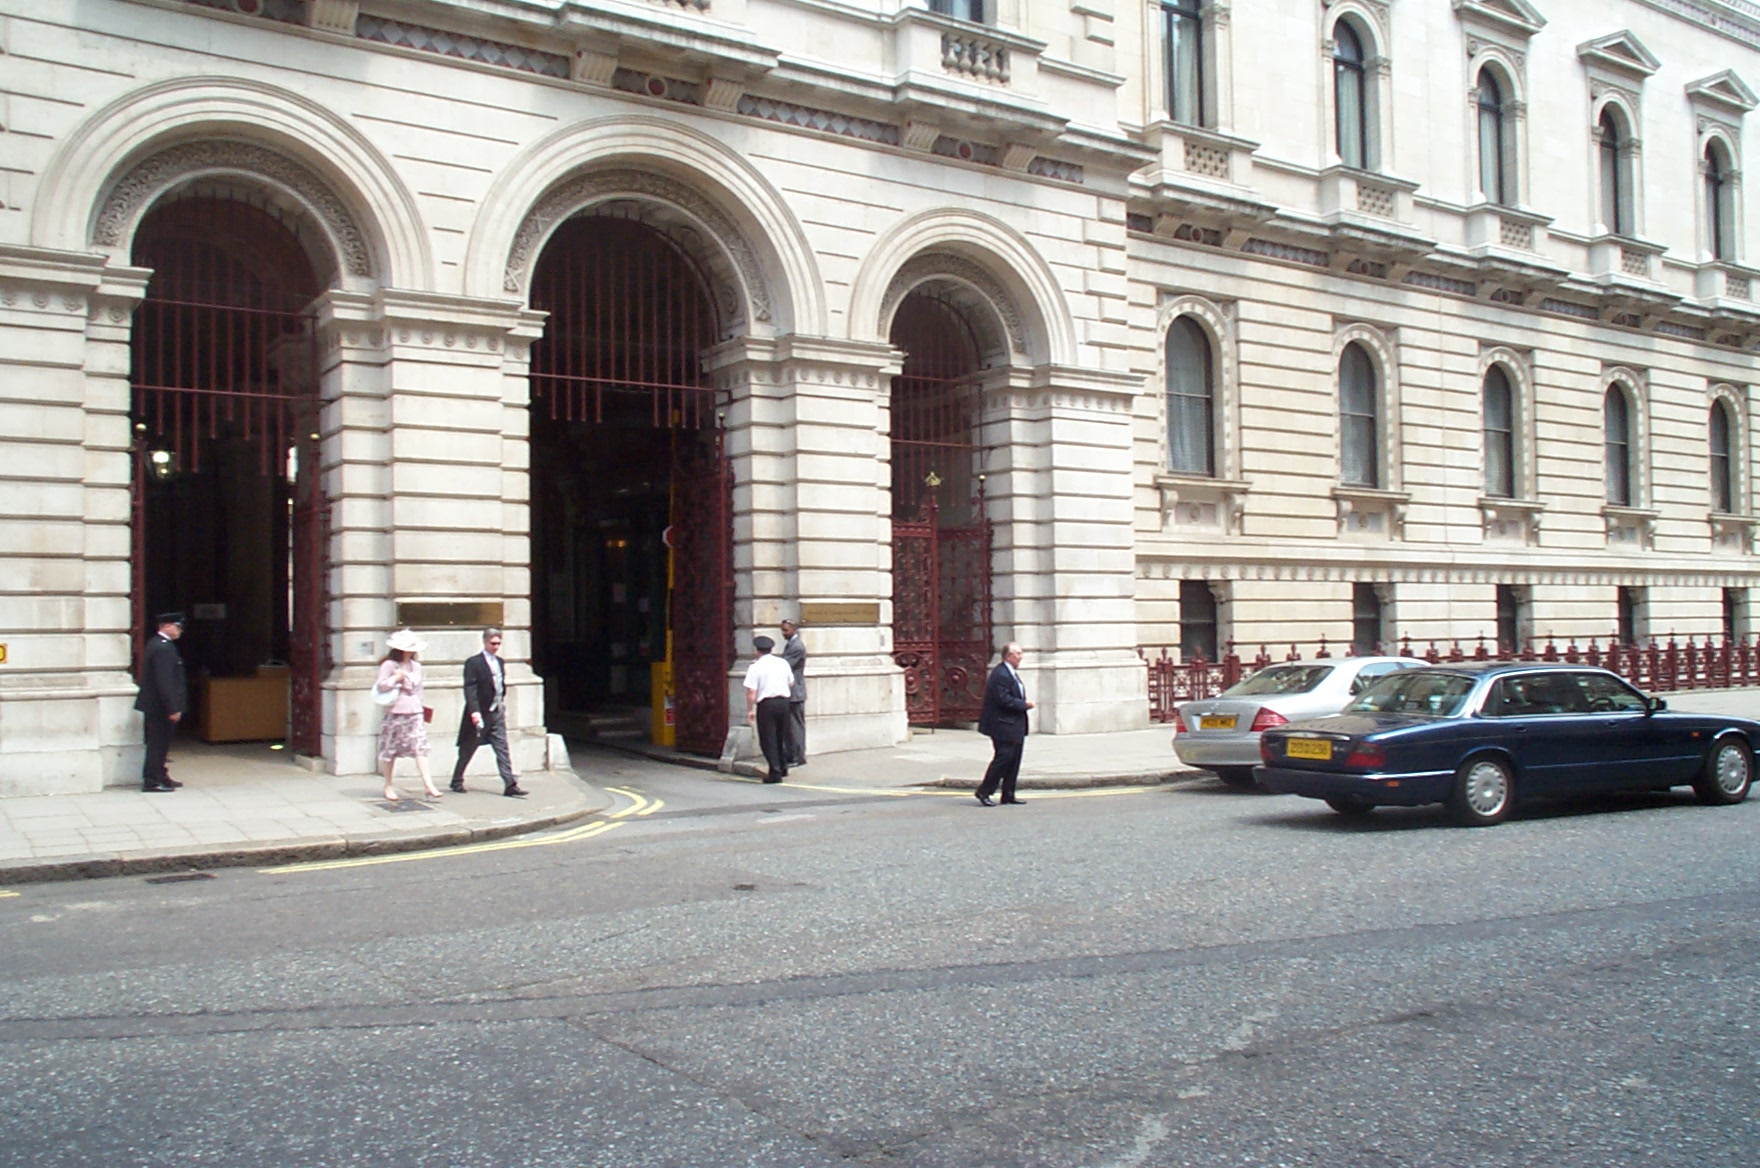 Foreign And Commonwealth Office Building Site Wikipedia Org